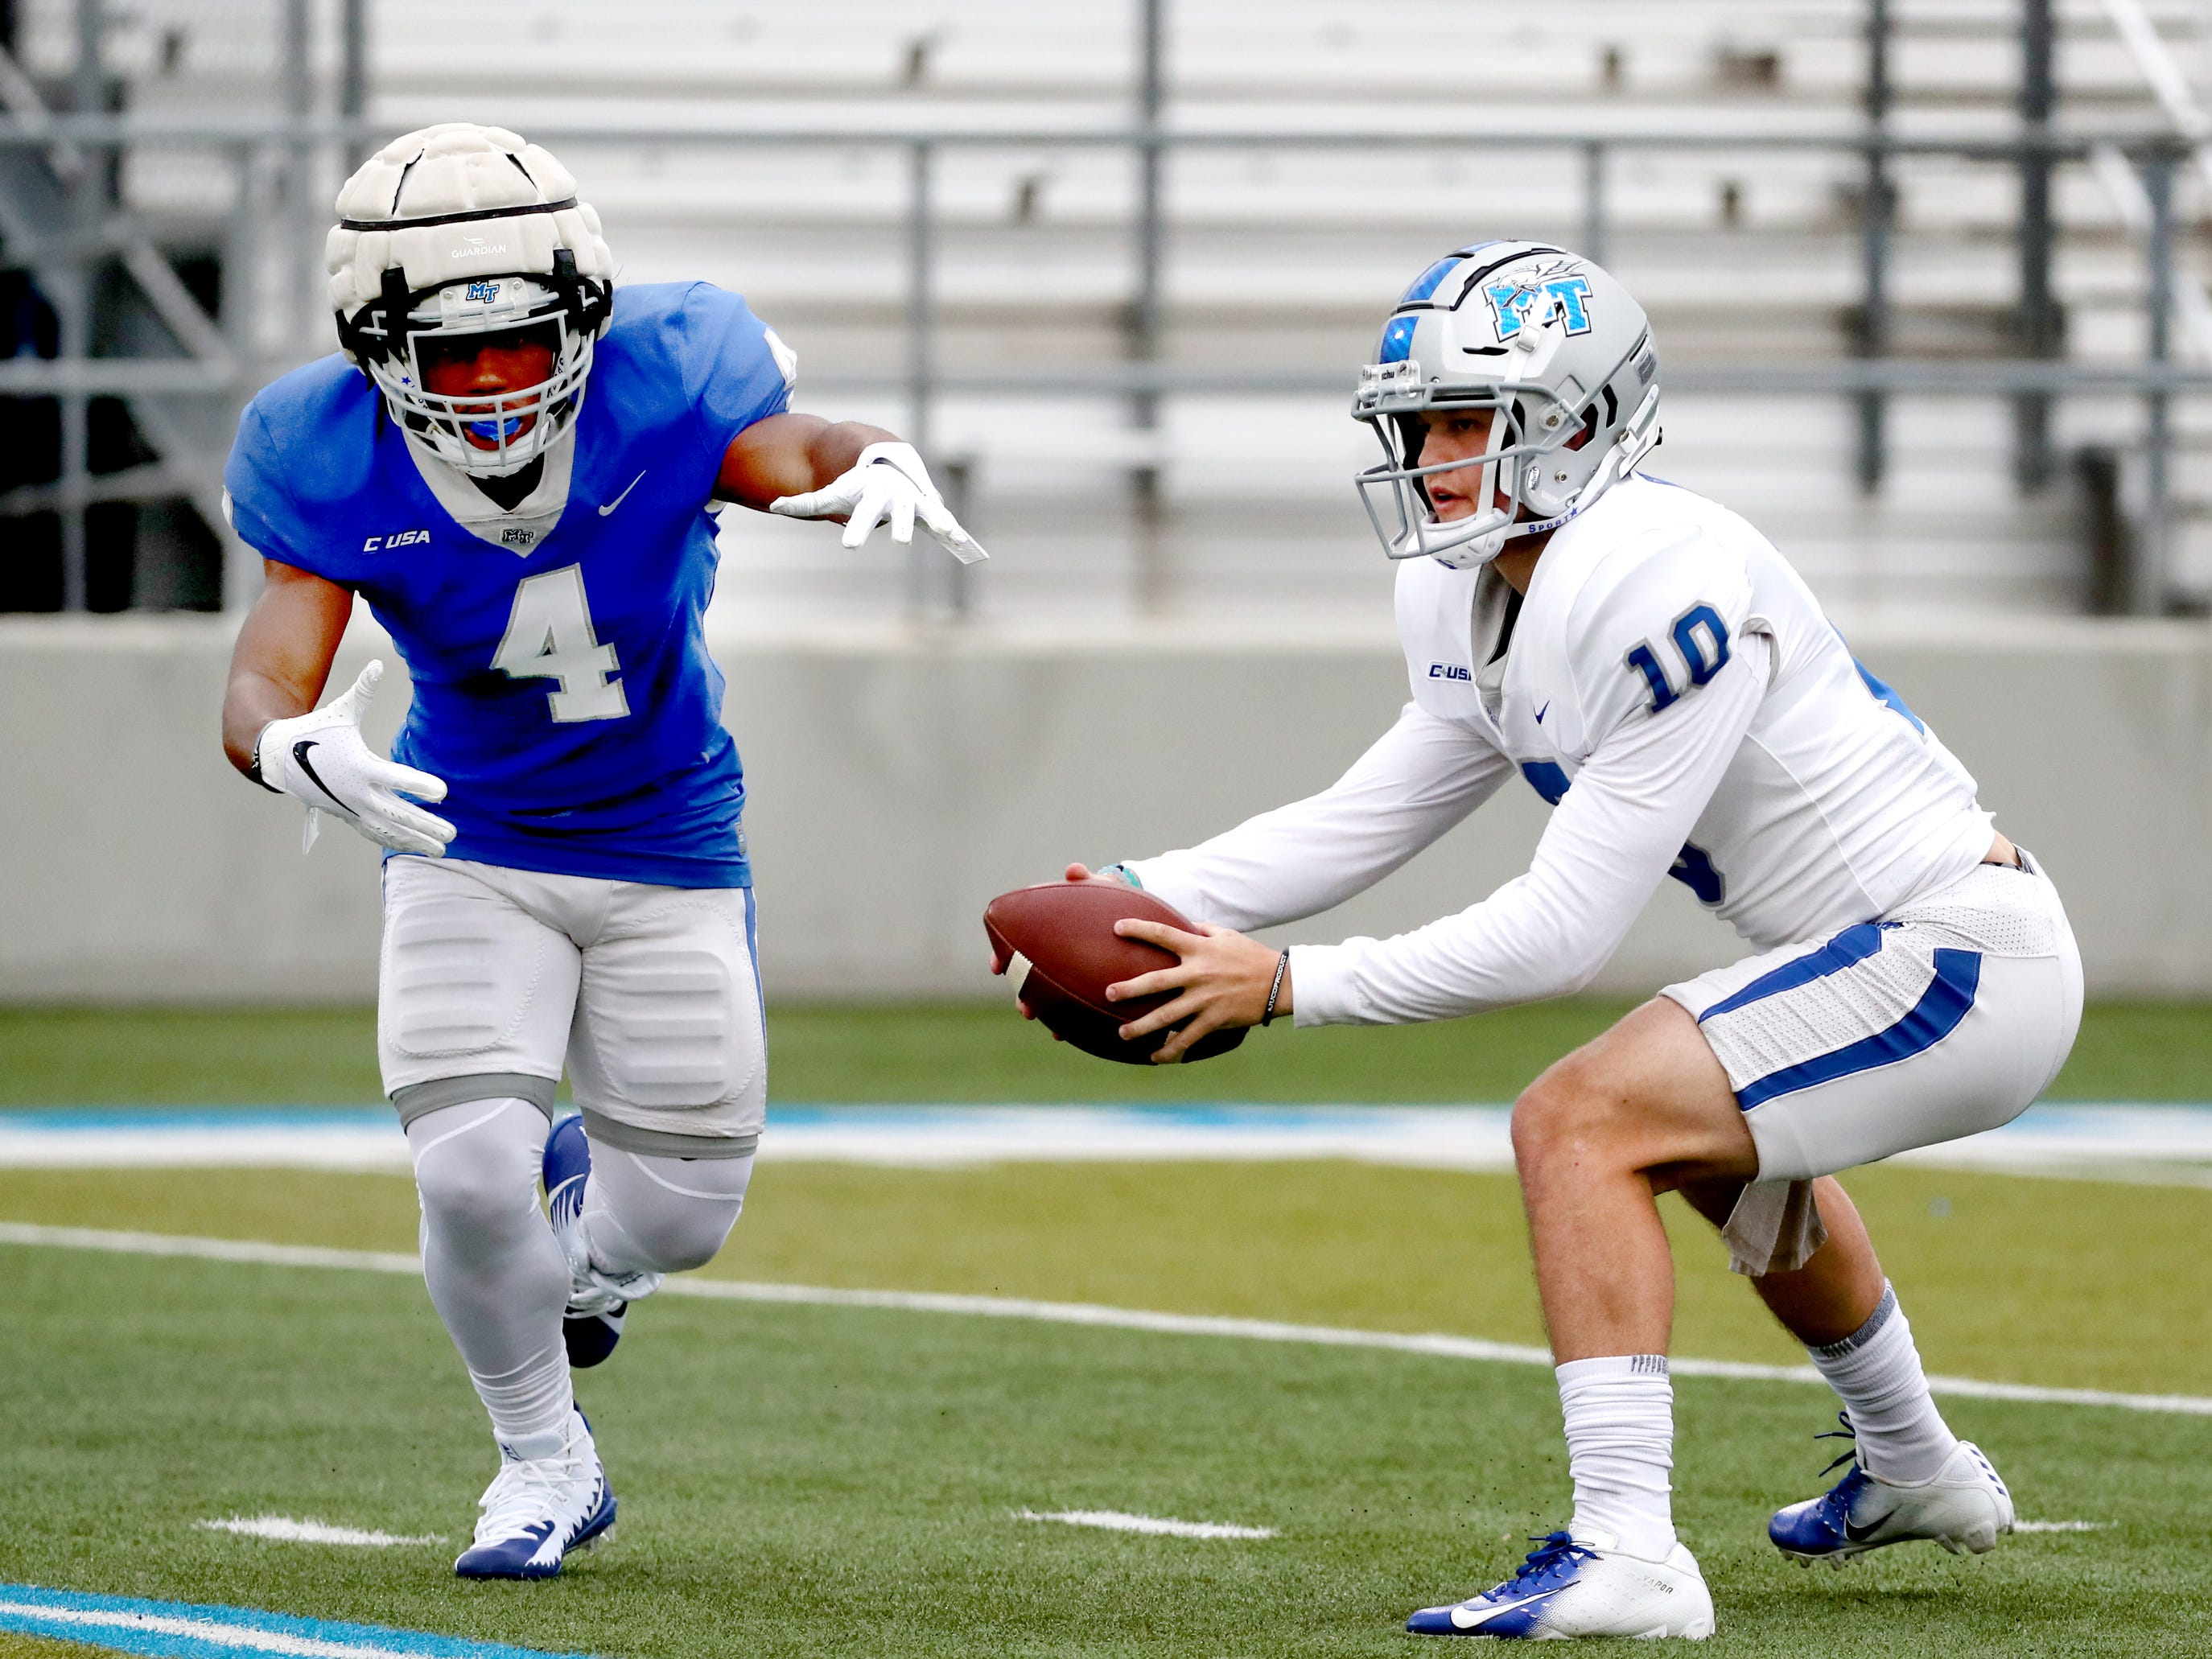 "MTSU's running back D'Monte Kemp (4) looks to take the hand-off as MTSU's quarterback Asher O'Hara (10) looks to pass the ball during MTSU's Blue-White Spring Finale held on Saturday April 13, 2019, at MTSU's Johnny ""Red"" Floyd Stadium."